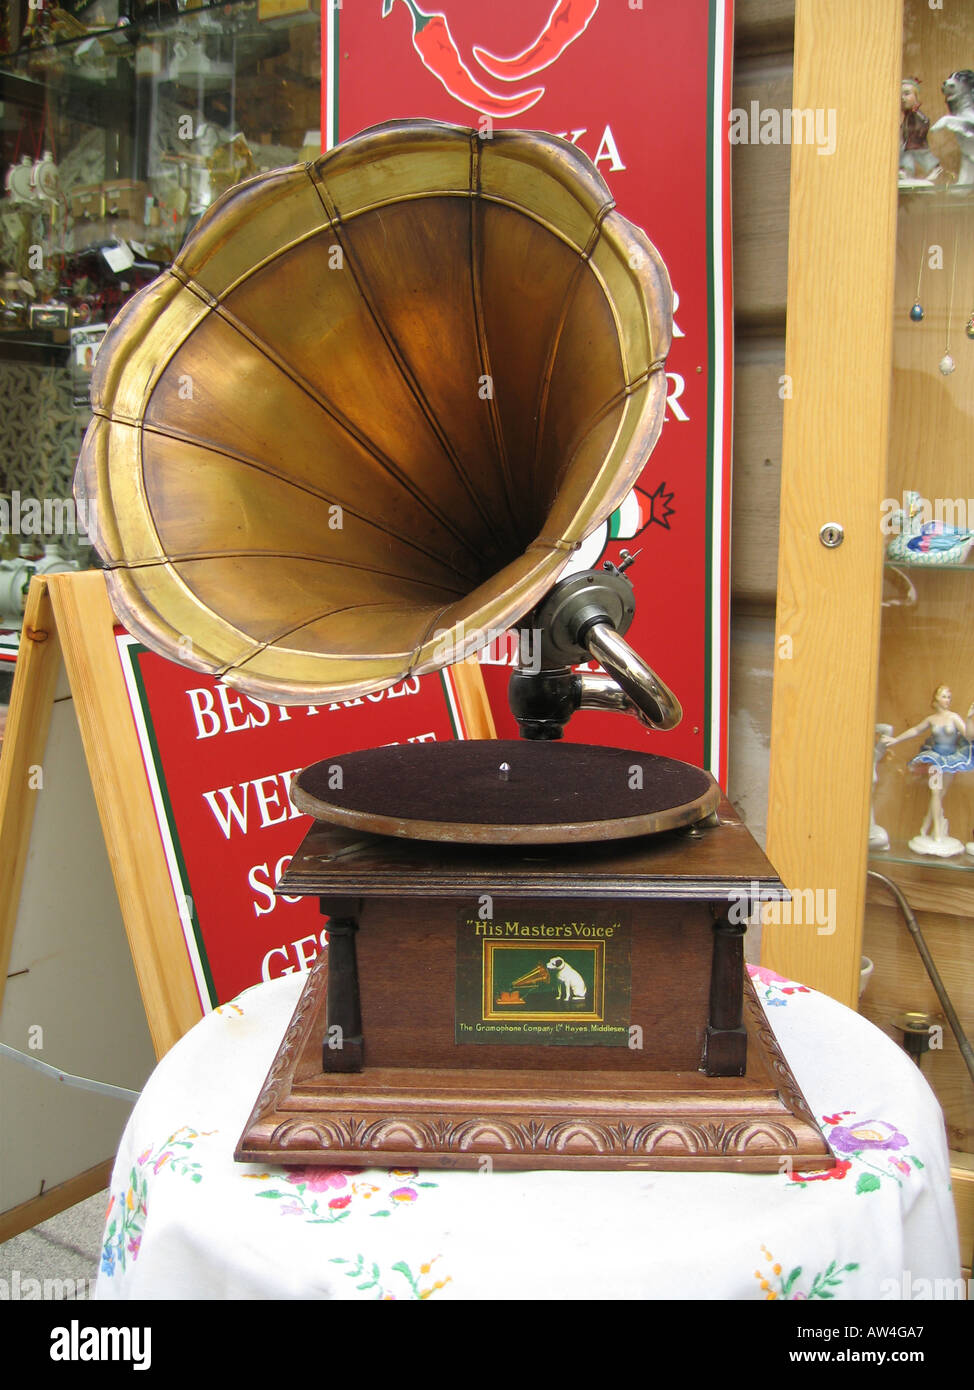 Old His Masters Voice Gramophone with Horn - Stock Image